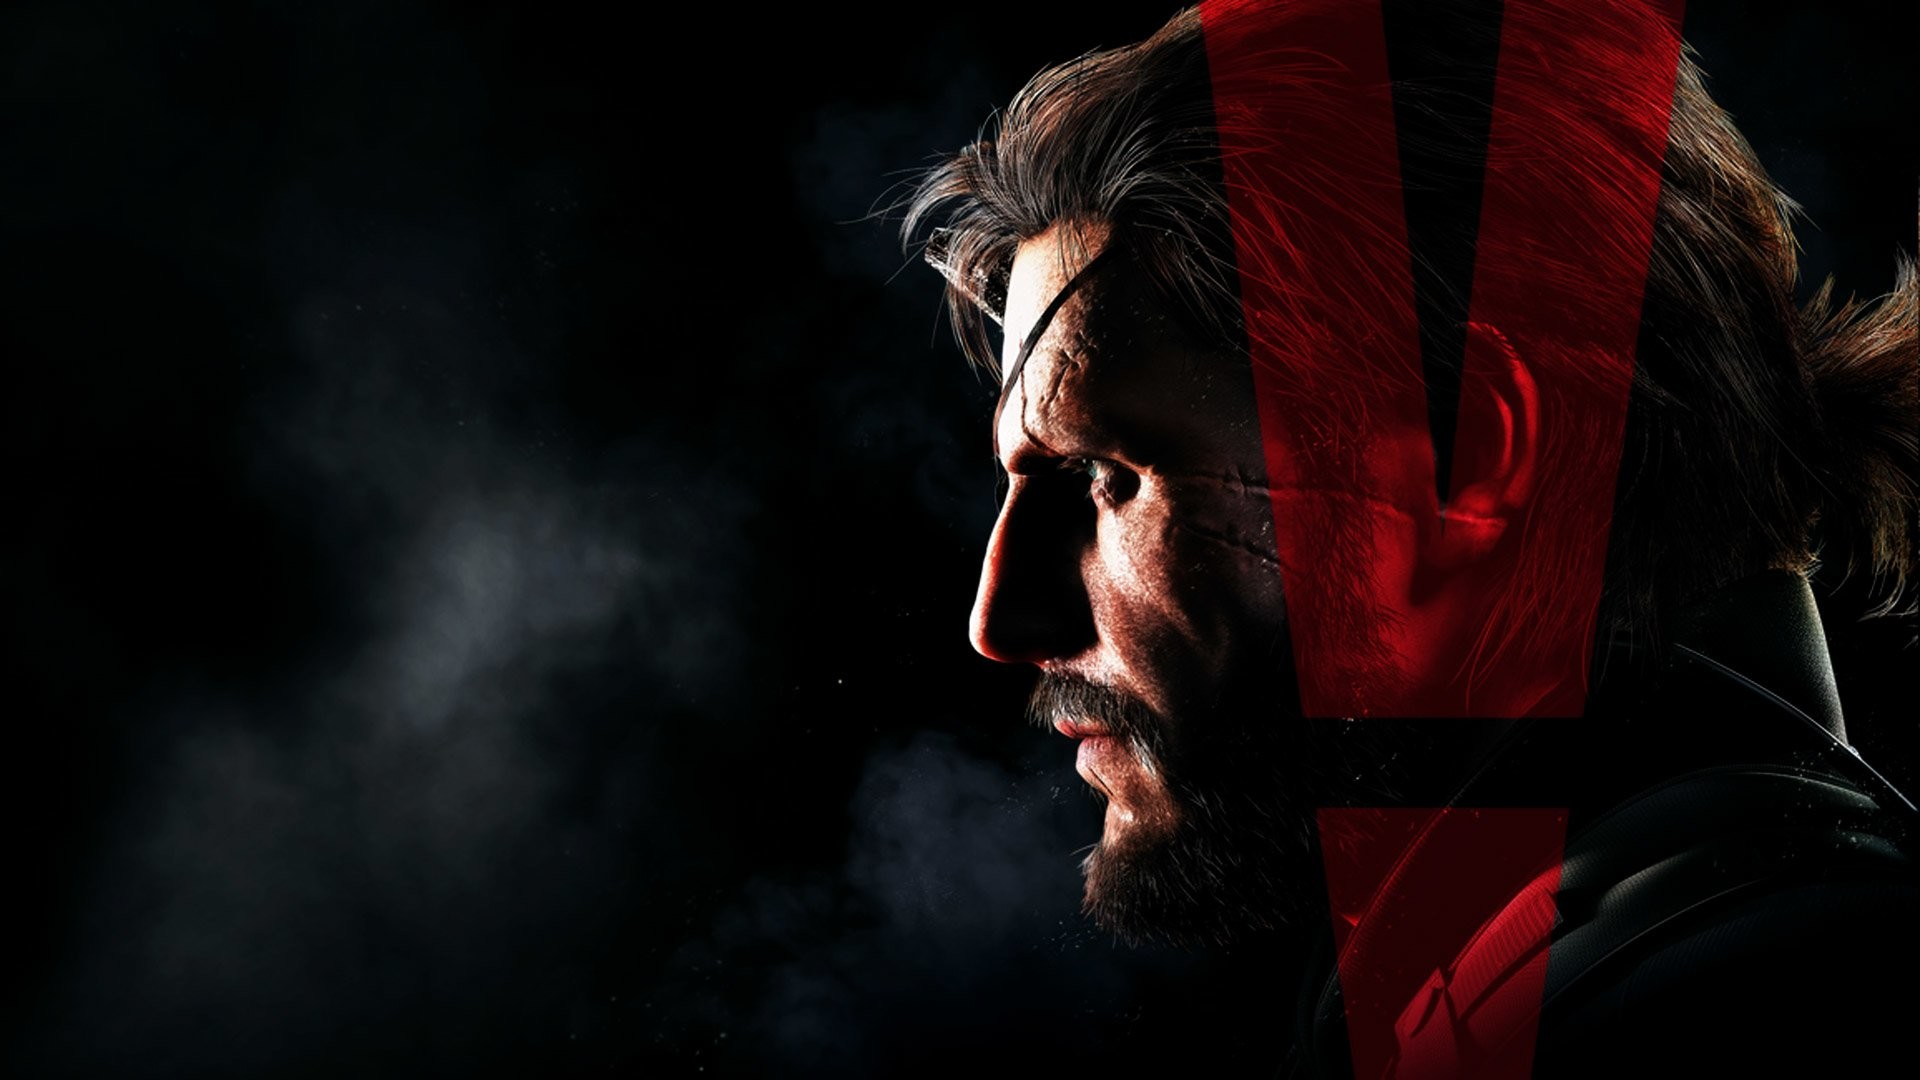 Mgsv Hd Wallpaper 90 Images